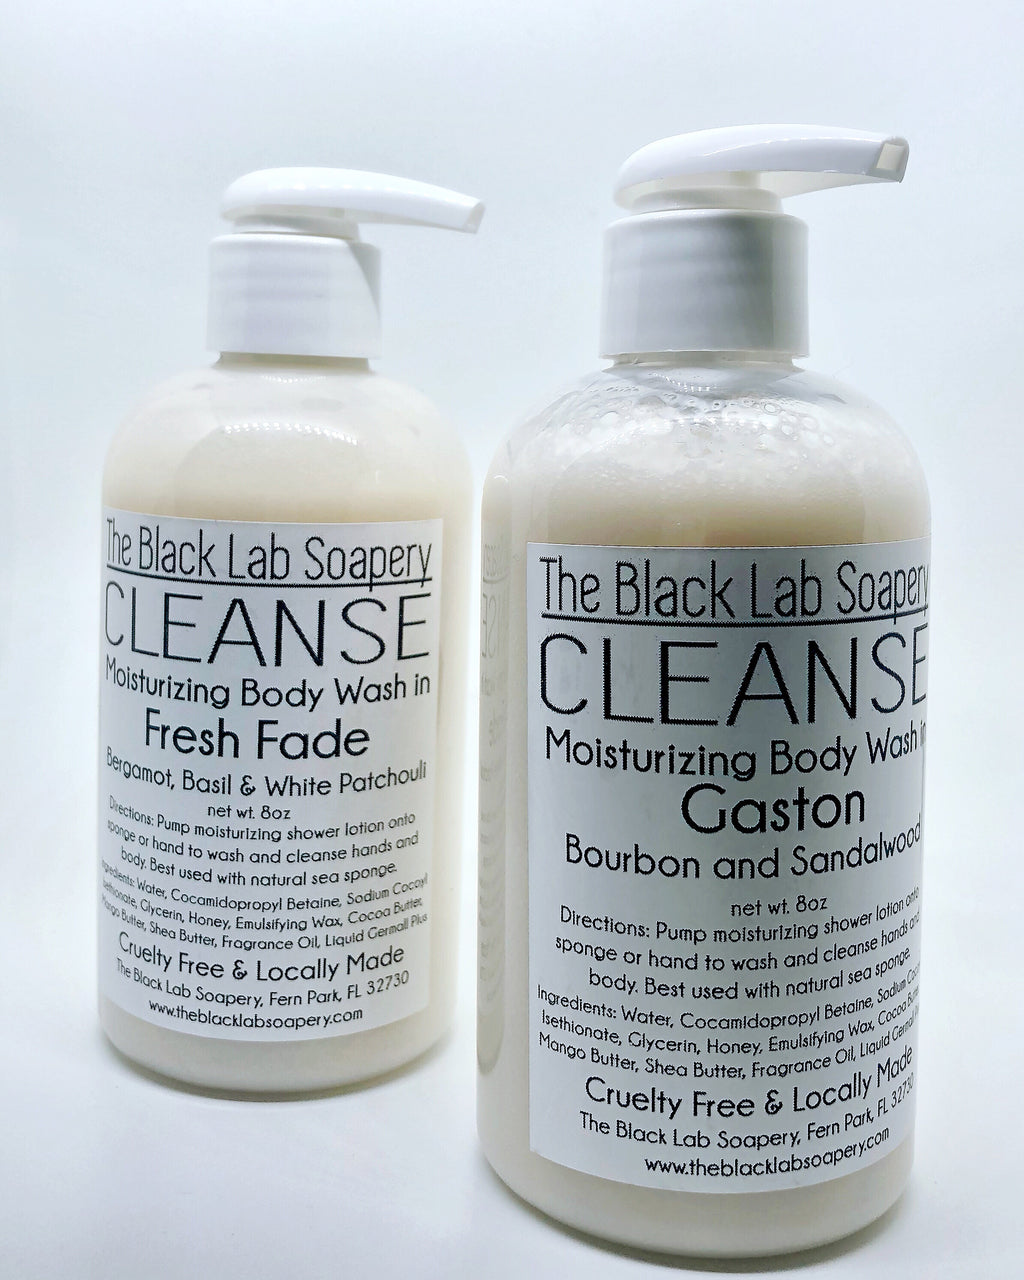 CLEANSE - Cream Body Wash - The Black Lab Soapery